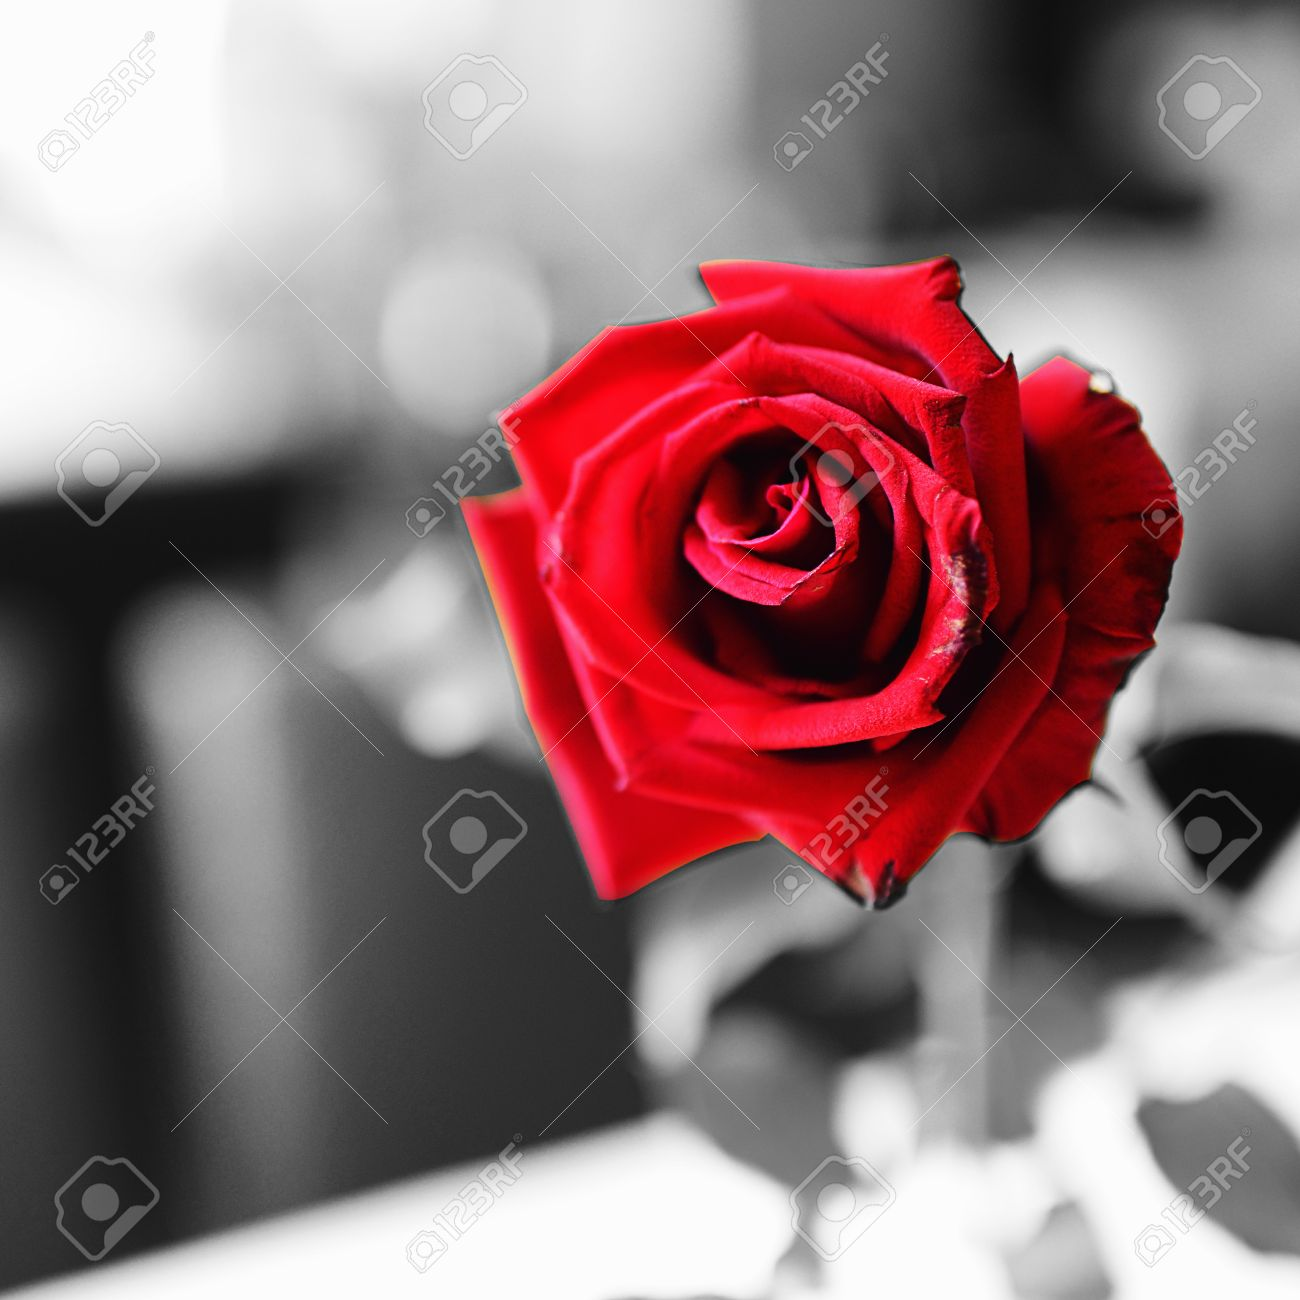 Red rose on black and white background for contrast concept stock photo 19656738